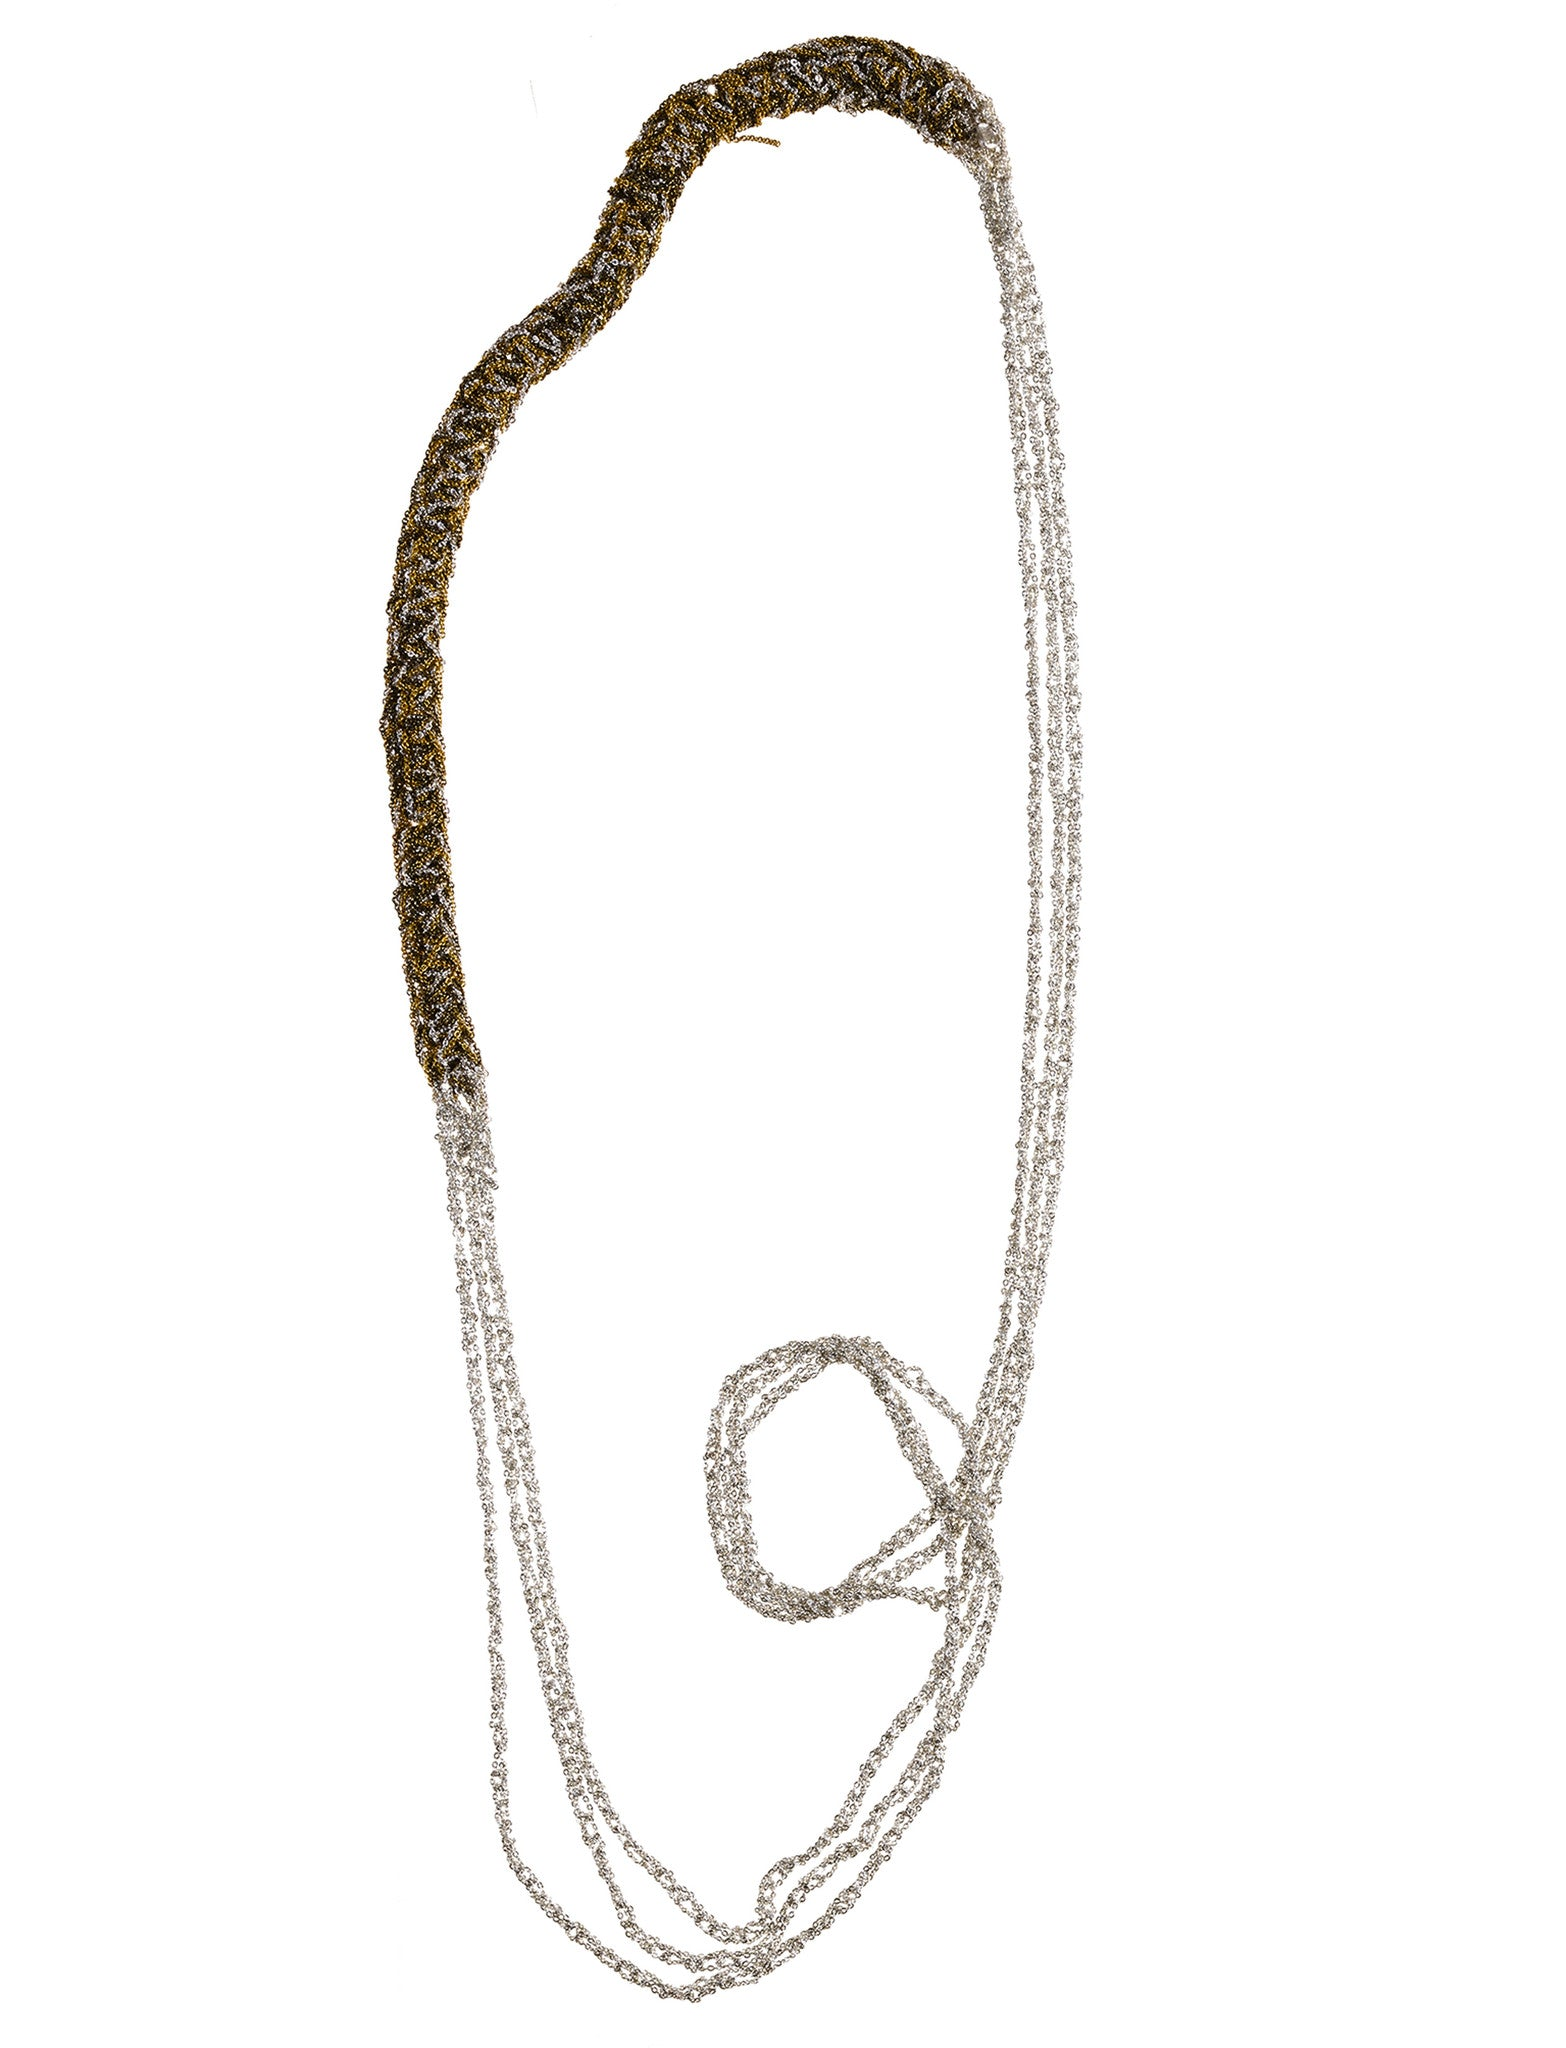 Baroque Slim Necklace in Silver + Gold + Haze